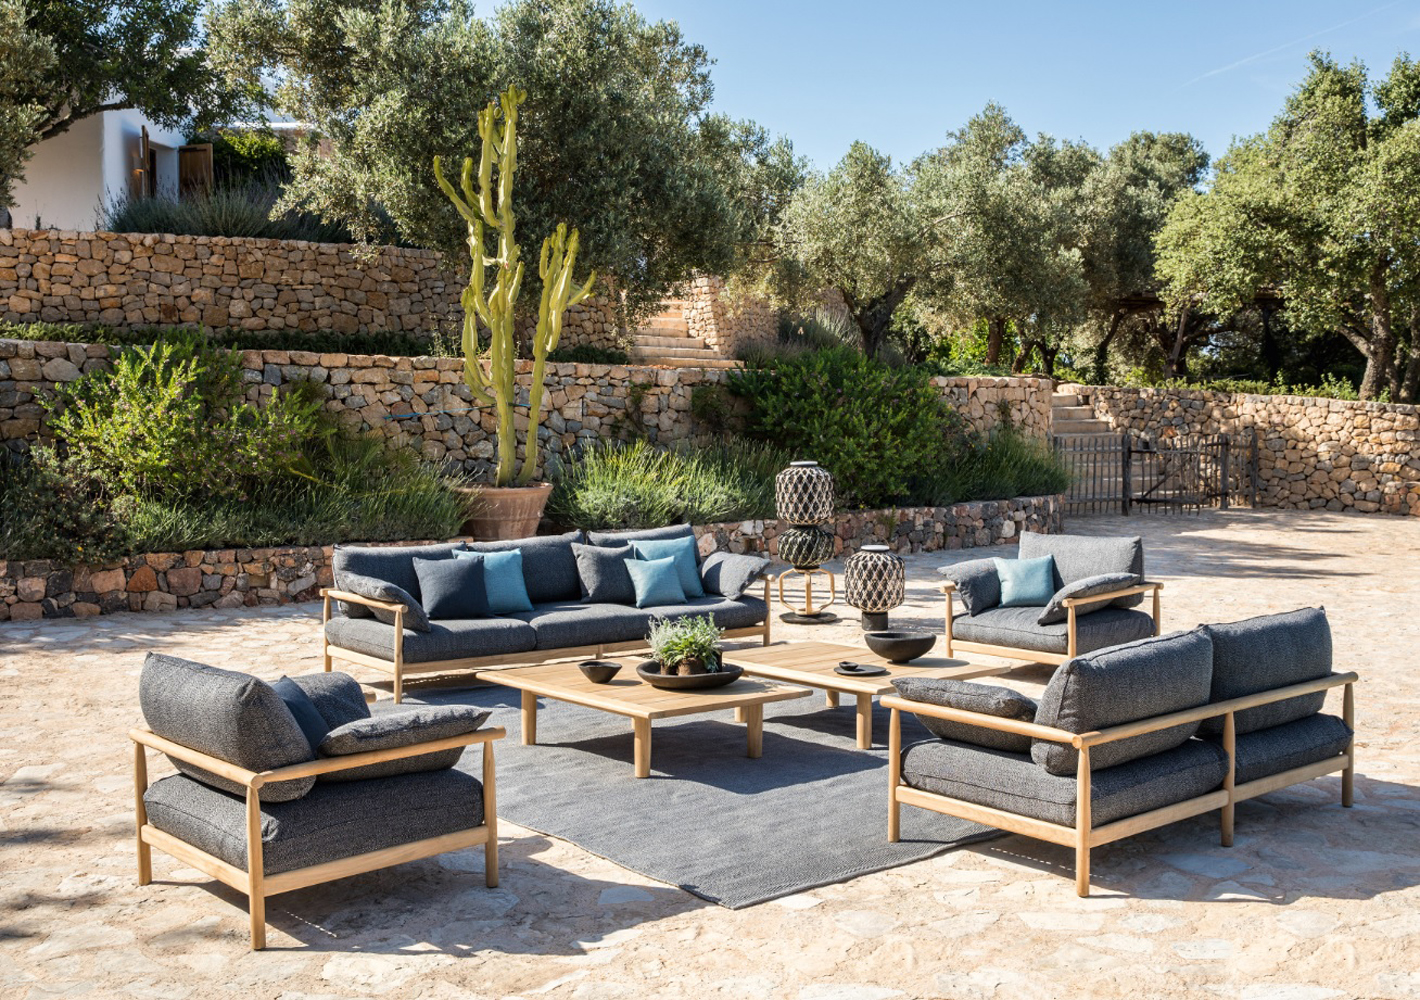 Cosh Living now the exclusive supplier of DEDON outdoor furniture